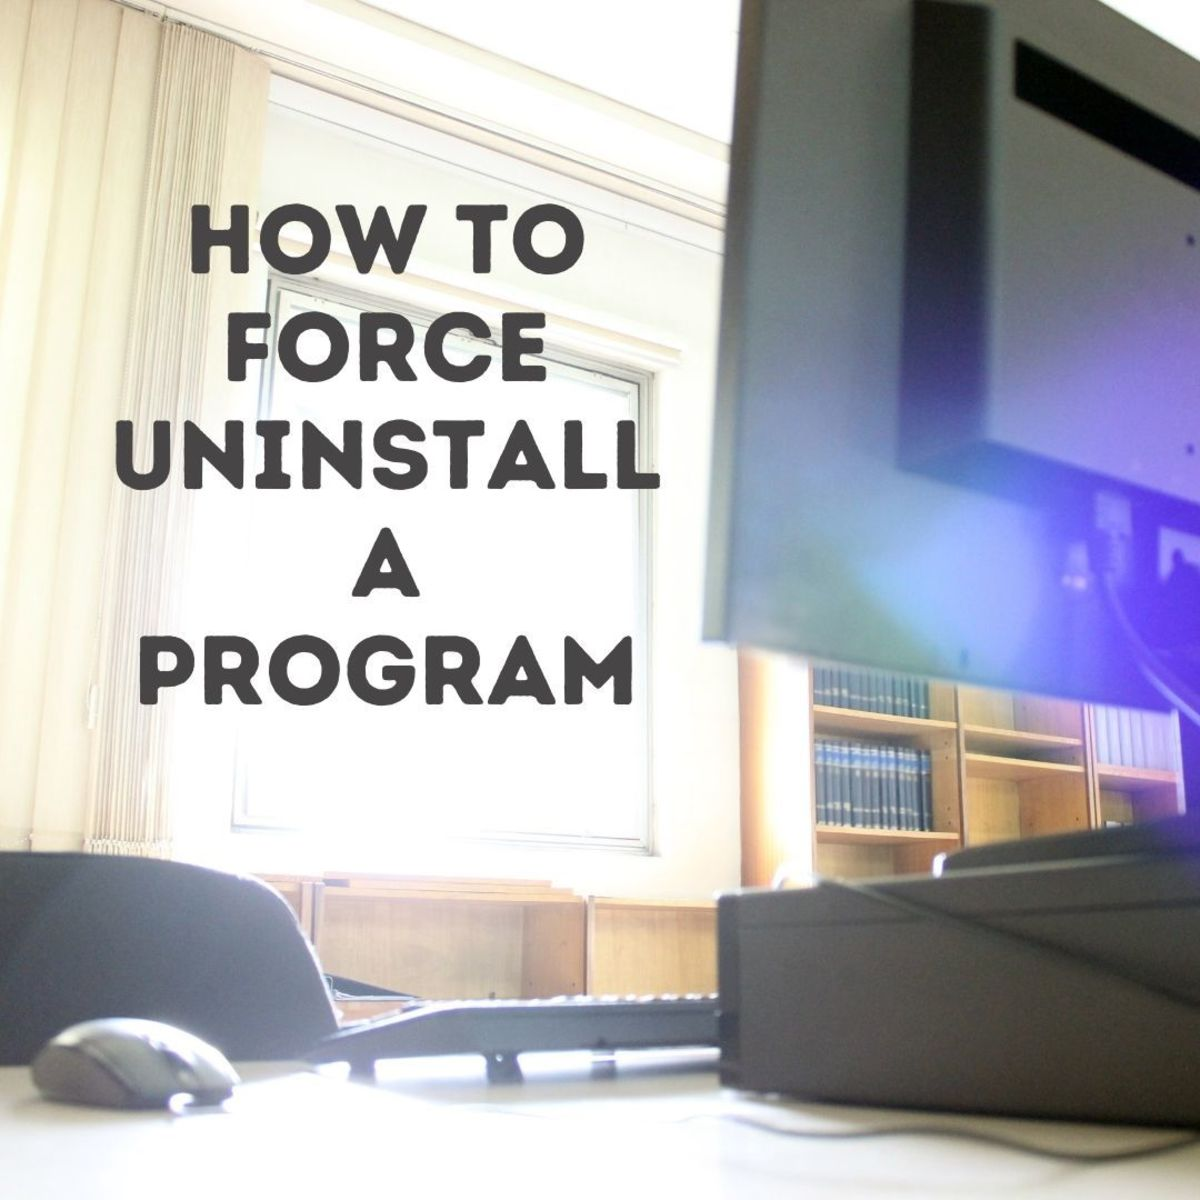 Learn how to force uninstall a program that won't uninstall on its own